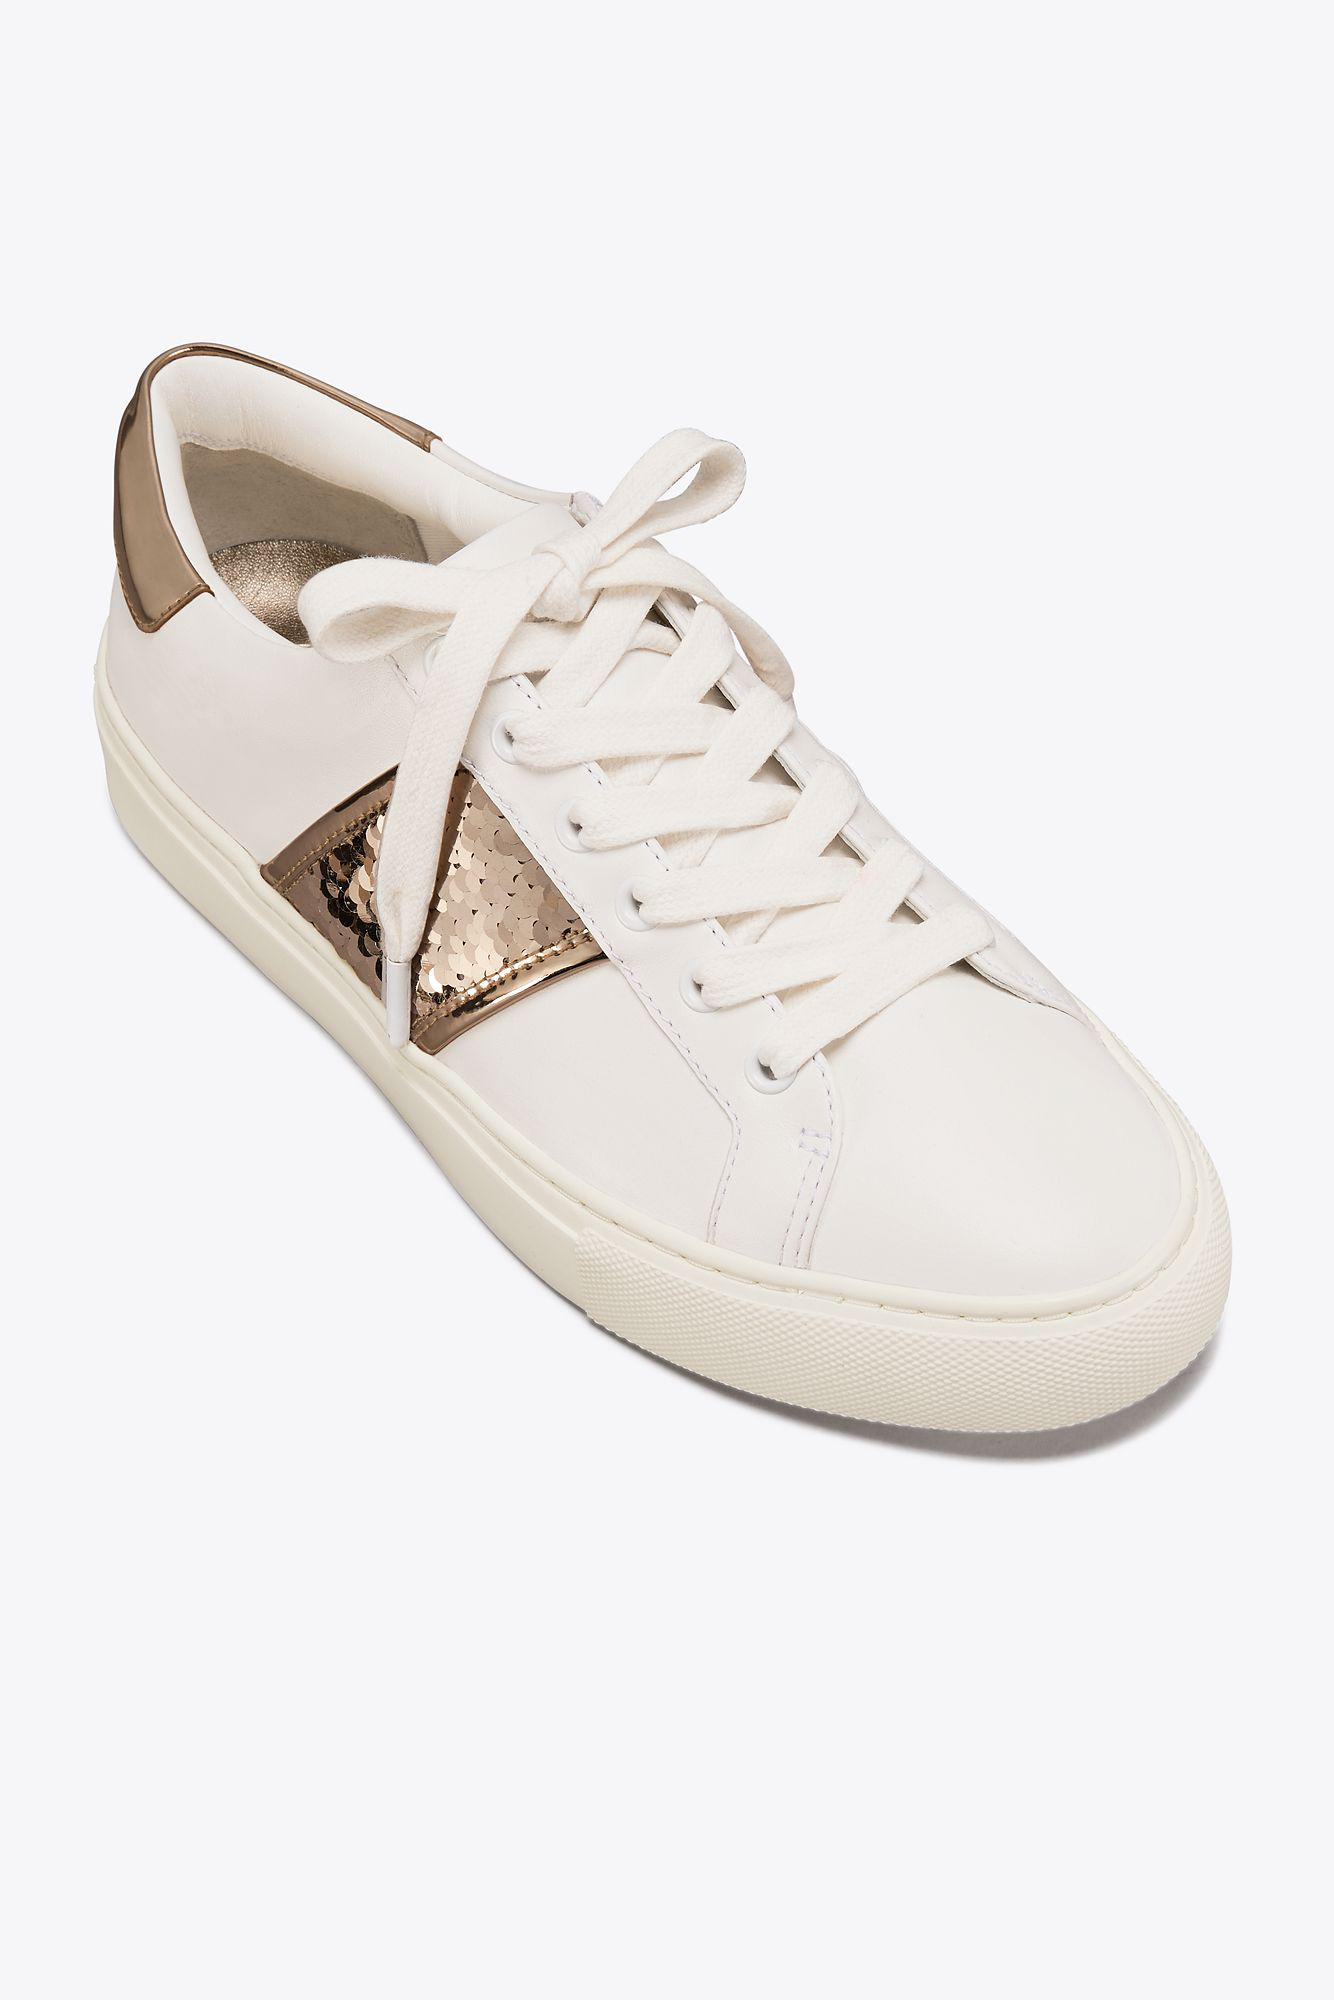 12dc41c4a Lyst - Tory Burch Carter Sequin Sneaker in White